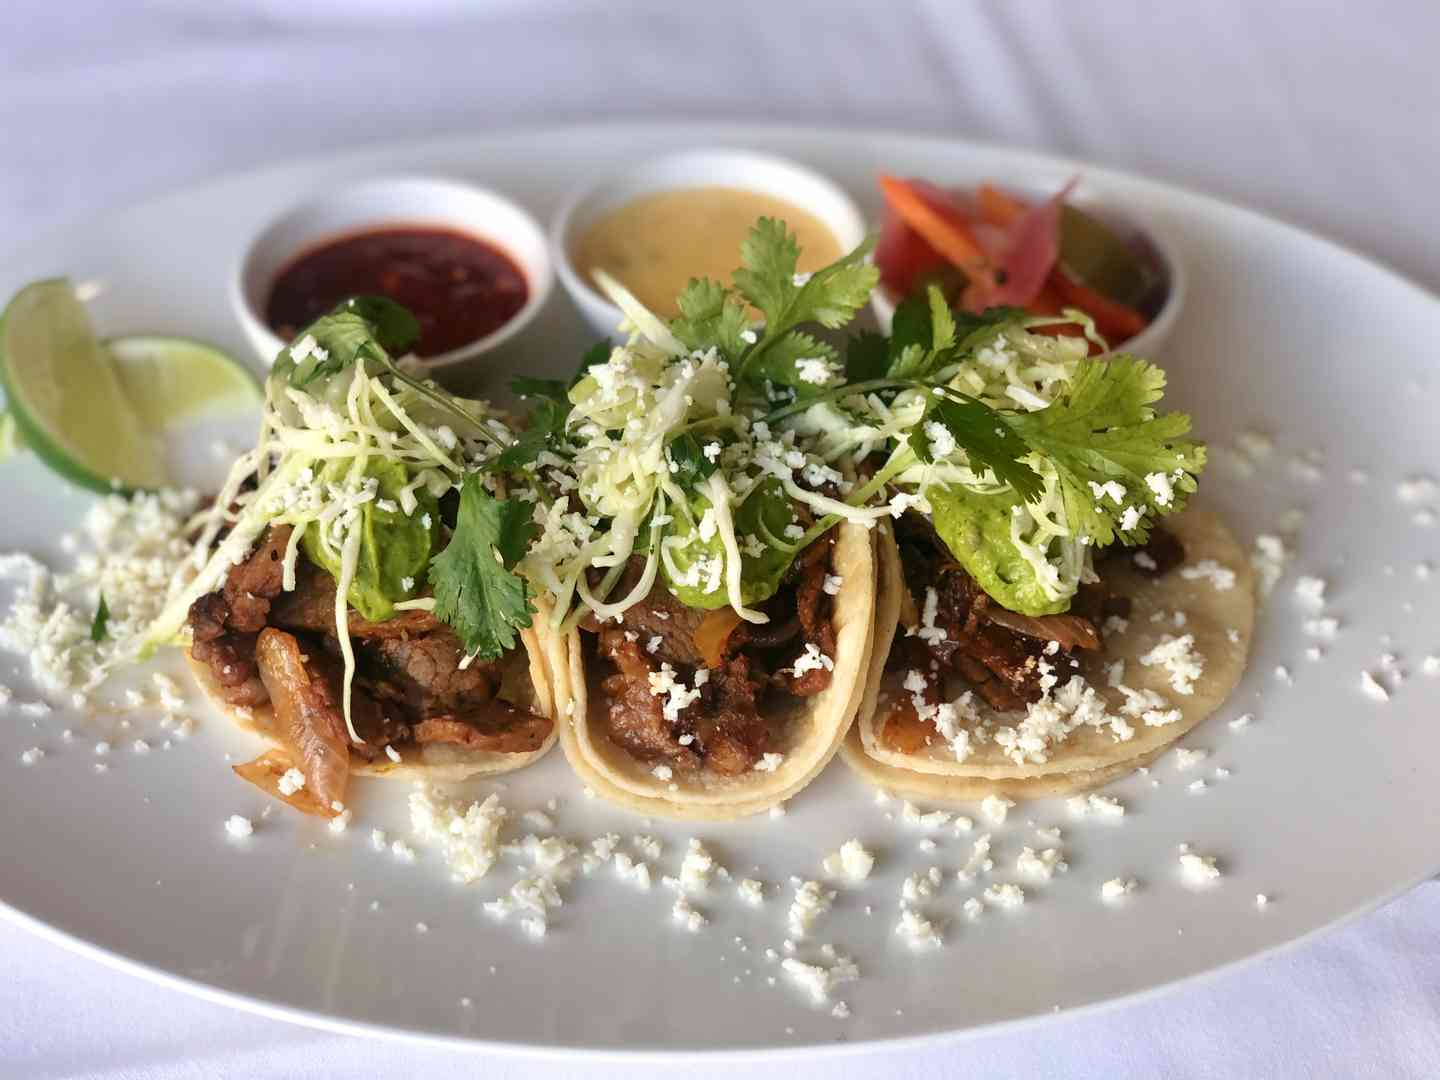 Thursday - Prime Beef Tacos